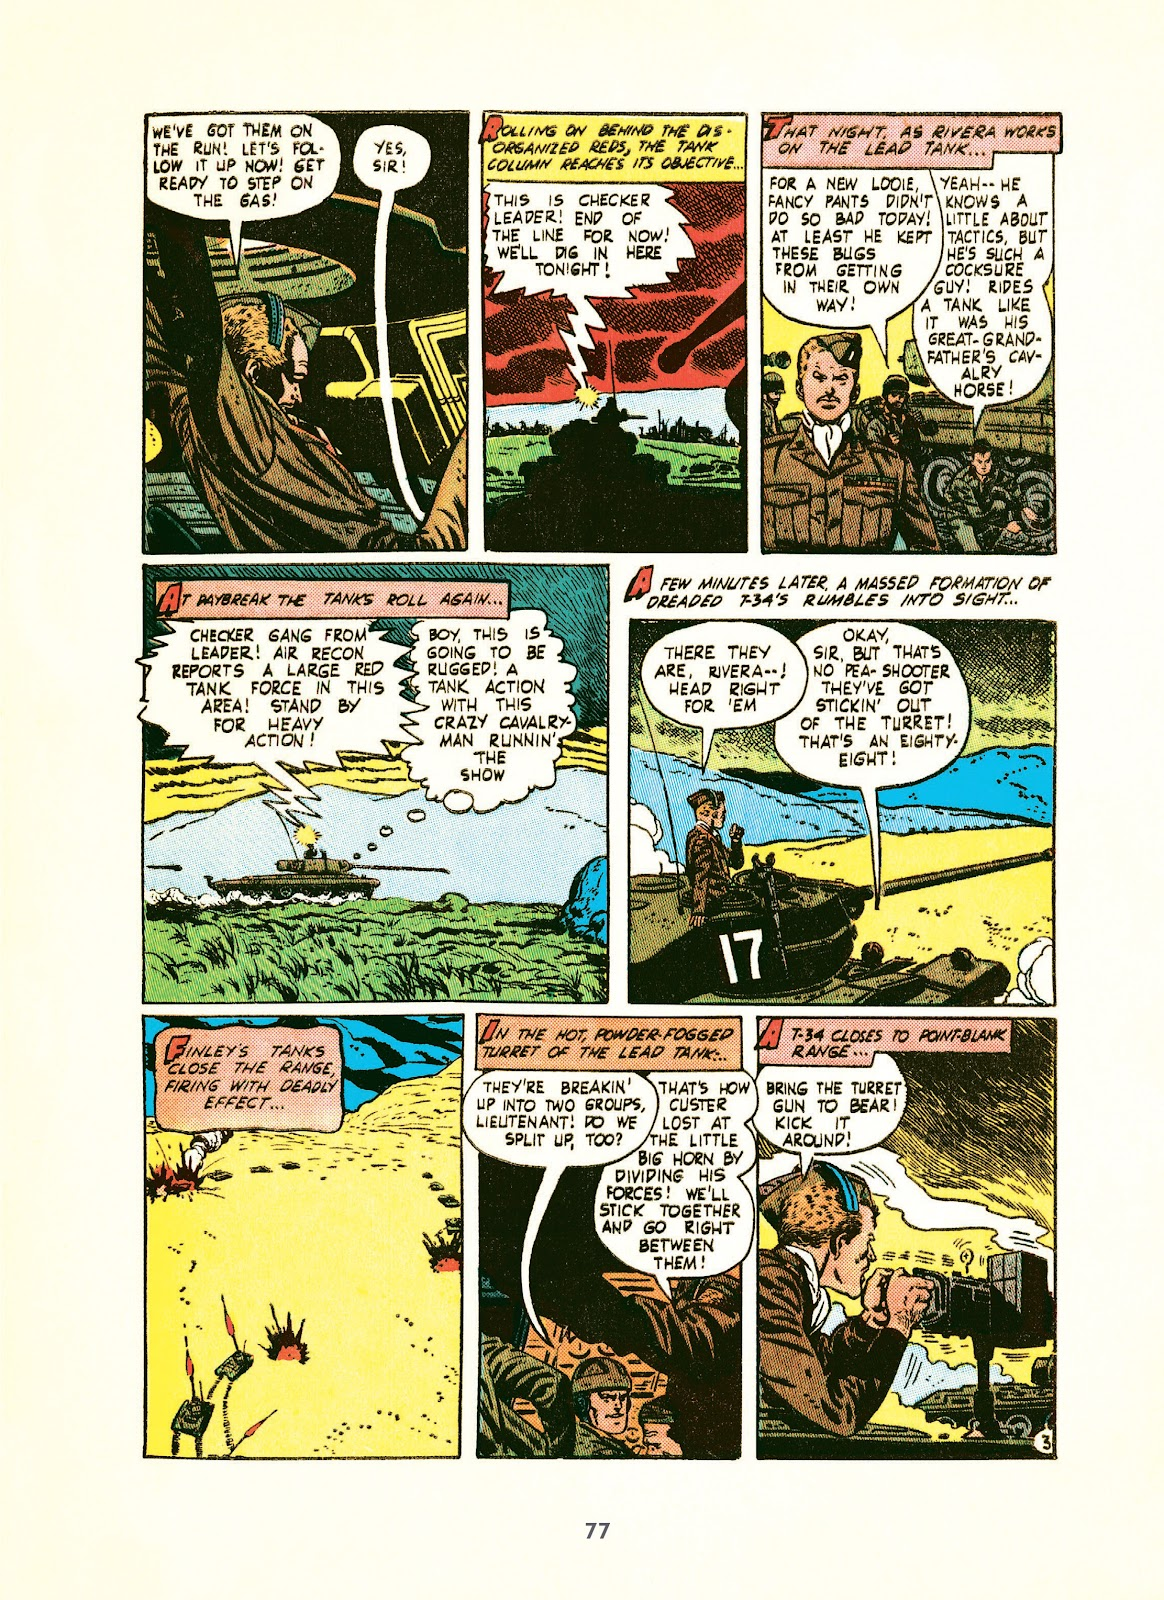 Read online Setting the Standard: Comics by Alex Toth 1952-1954 comic -  Issue # TPB (Part 1) - 76